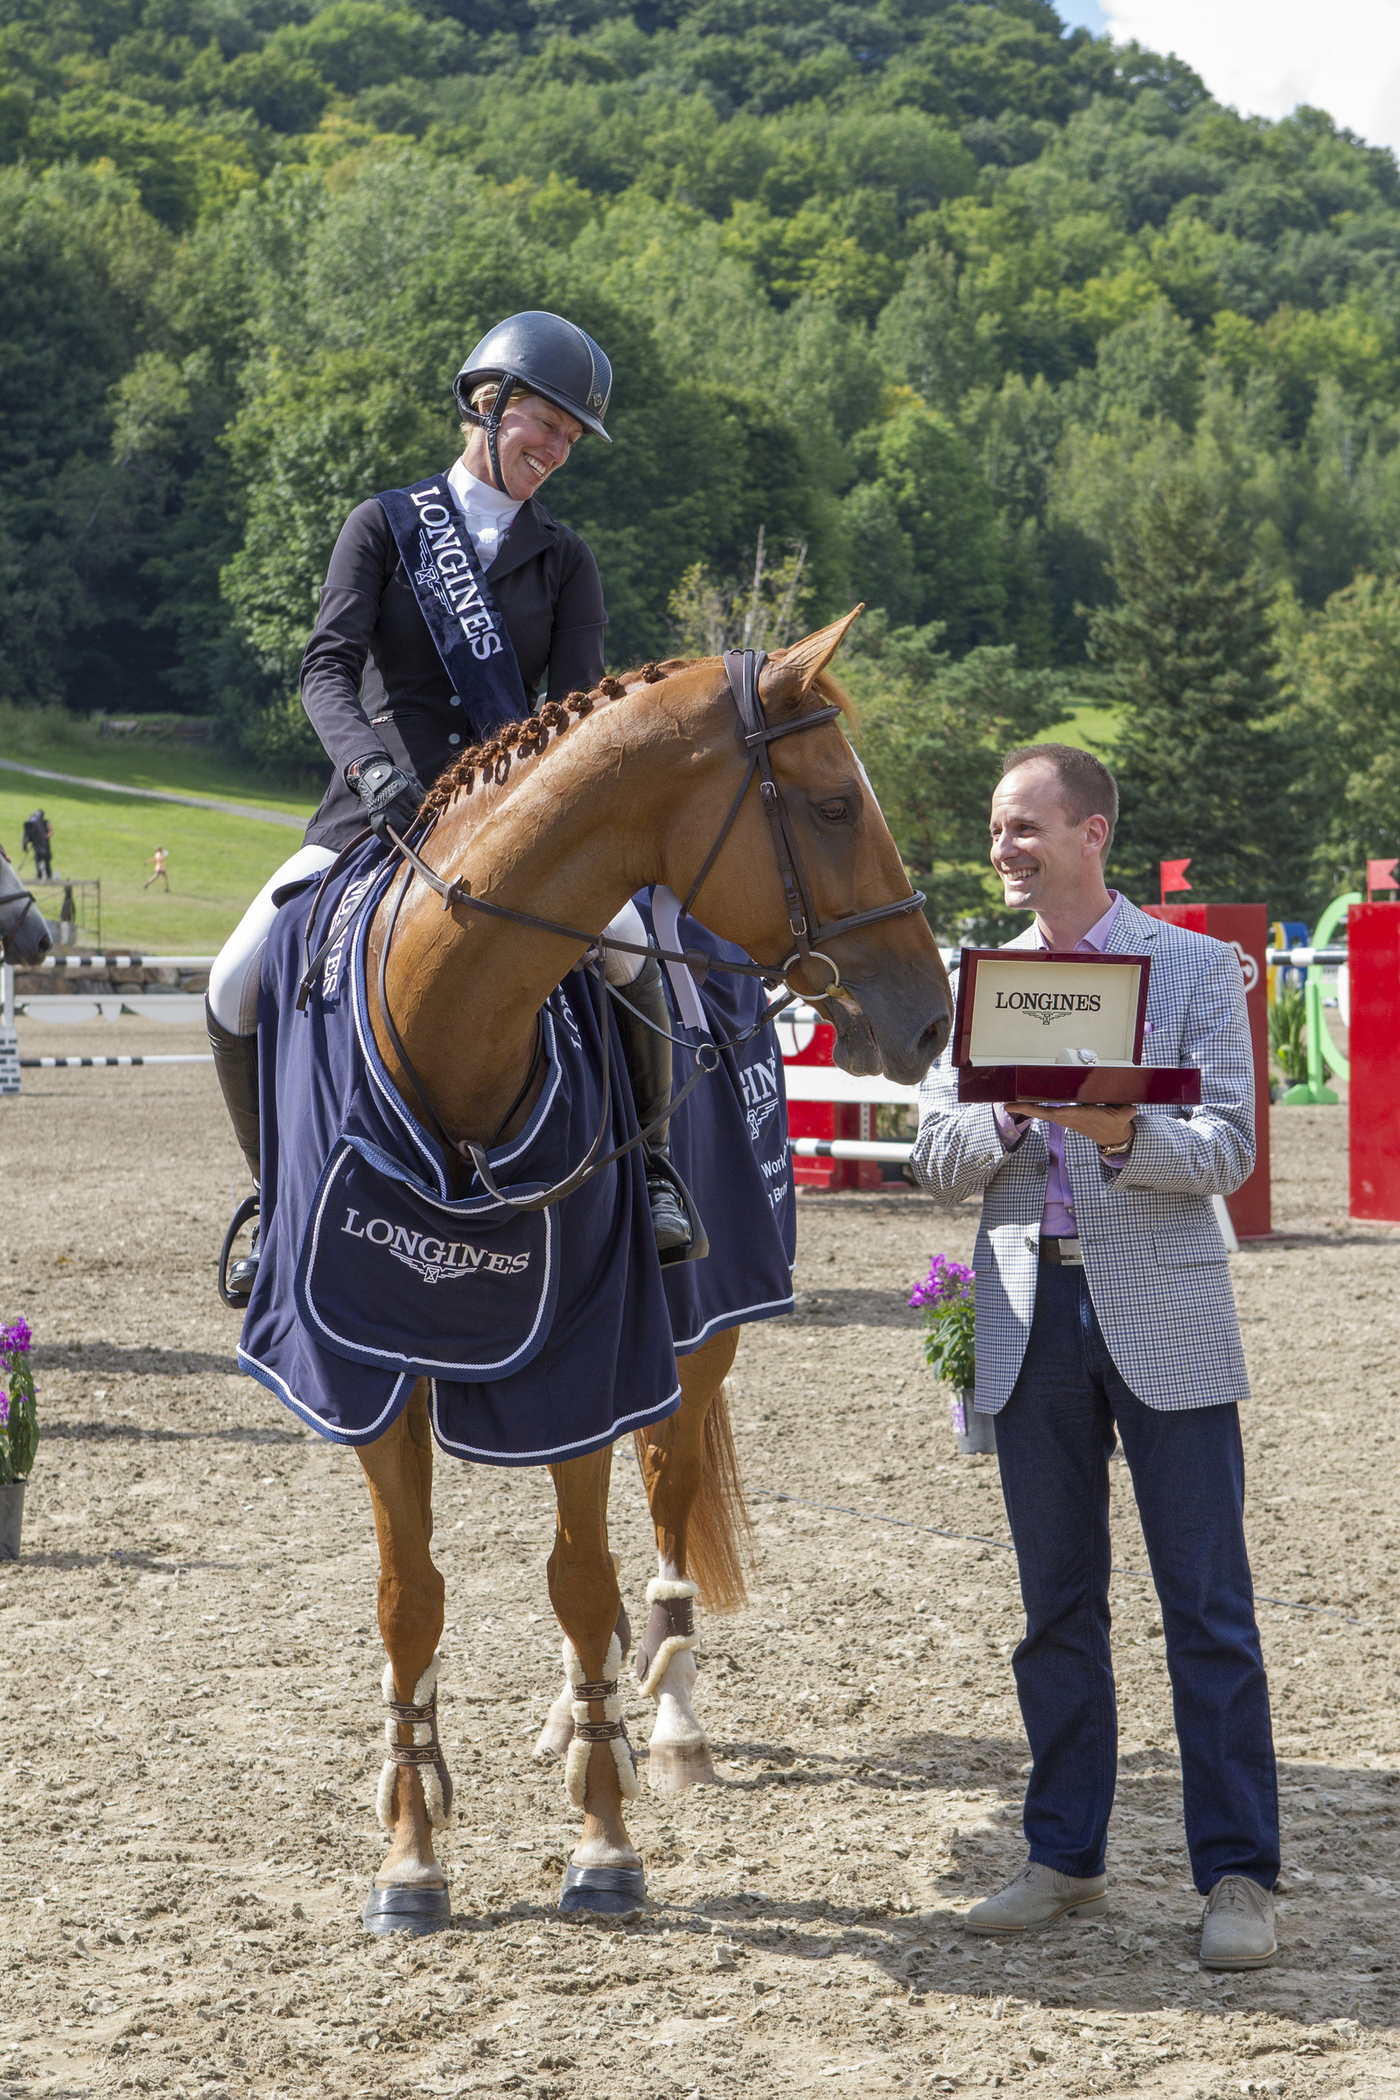 Longines Show Jumping Event: Longines FEI World Cup Jumping North American League at Bromont, Canada  5